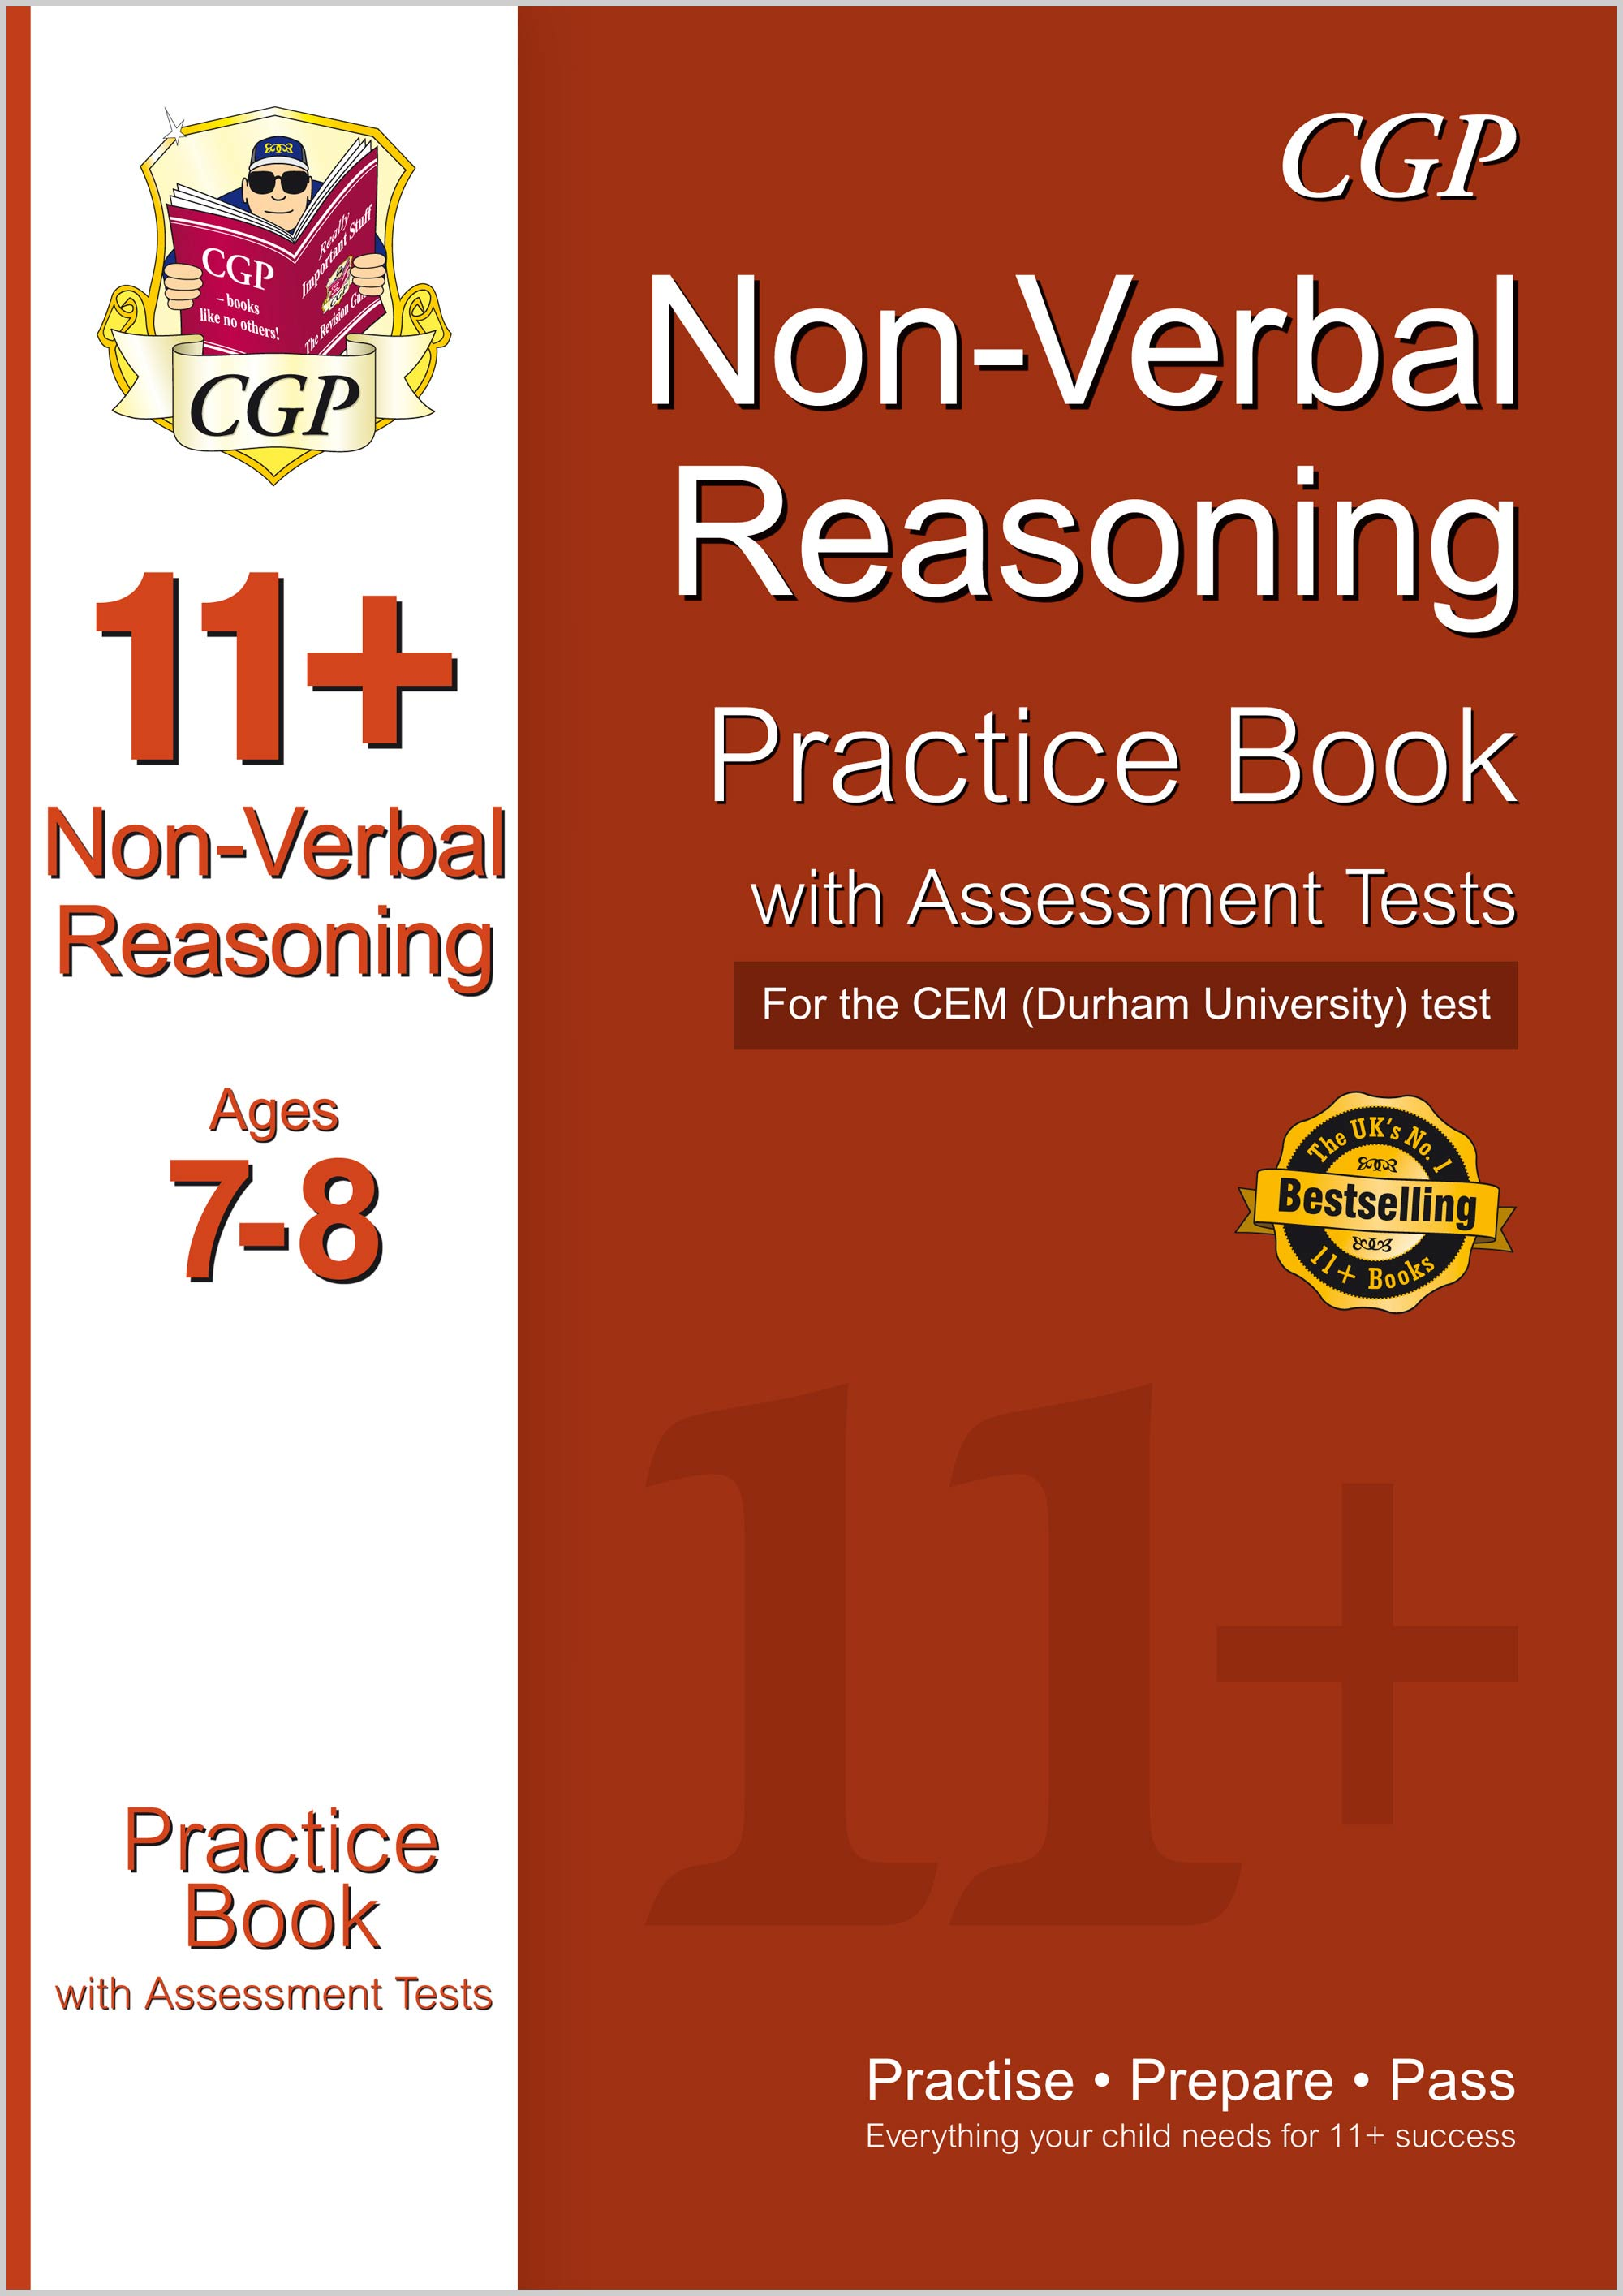 N3QDE1 - 11+ Non-Verbal Reasoning Practice Book with Assessment Tests (Ages 7-8) for the CEM Test